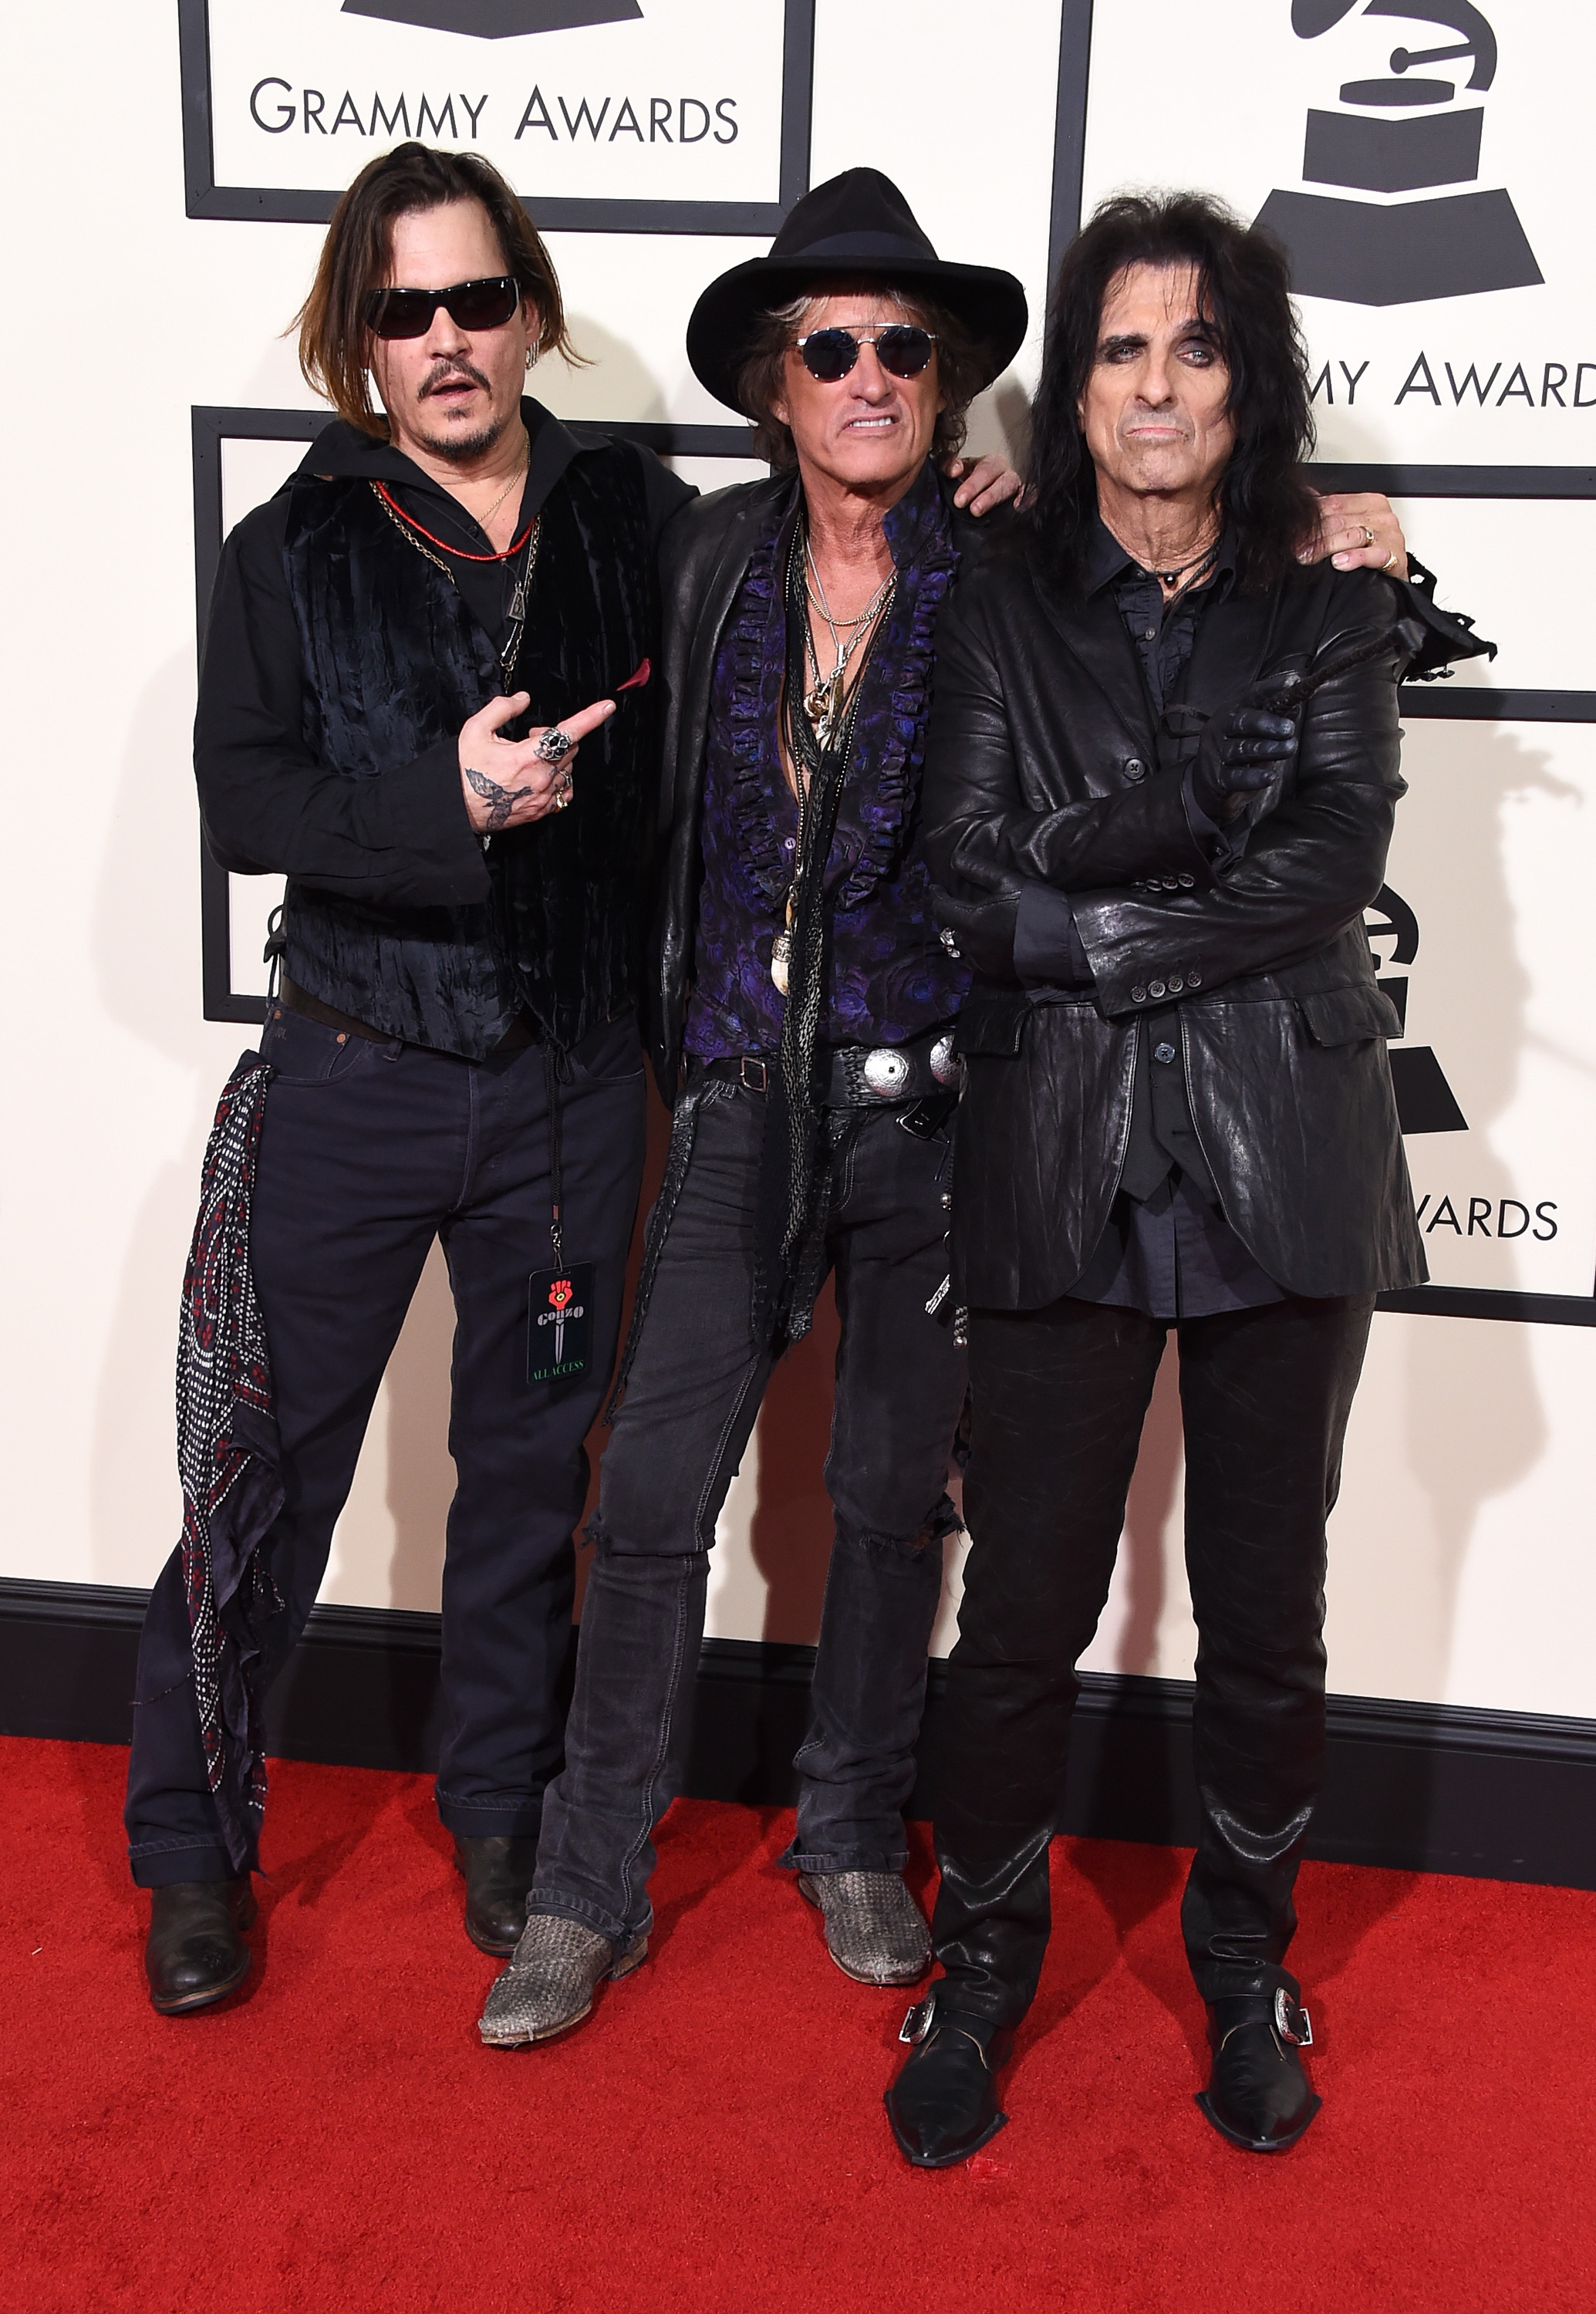 From left: Johnny Depp, Joe Perry and Alice Cooper of The Hollywood Vampires attend the 58th GRAMMY Awards at Staples Center on Feb. 15, 2016 in Los Angeles.